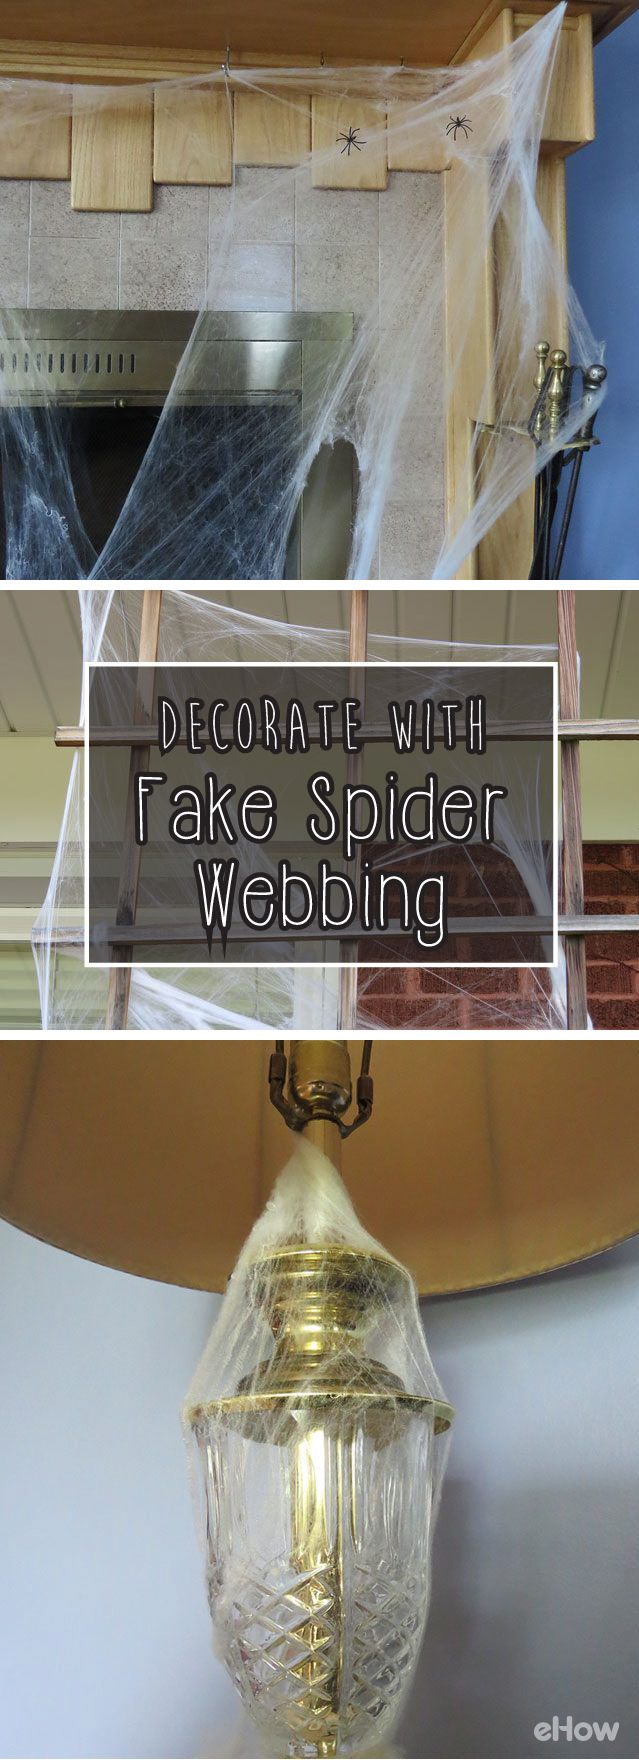 How To Decorate With Fake Spider Webbing Diy Halloween Decor And